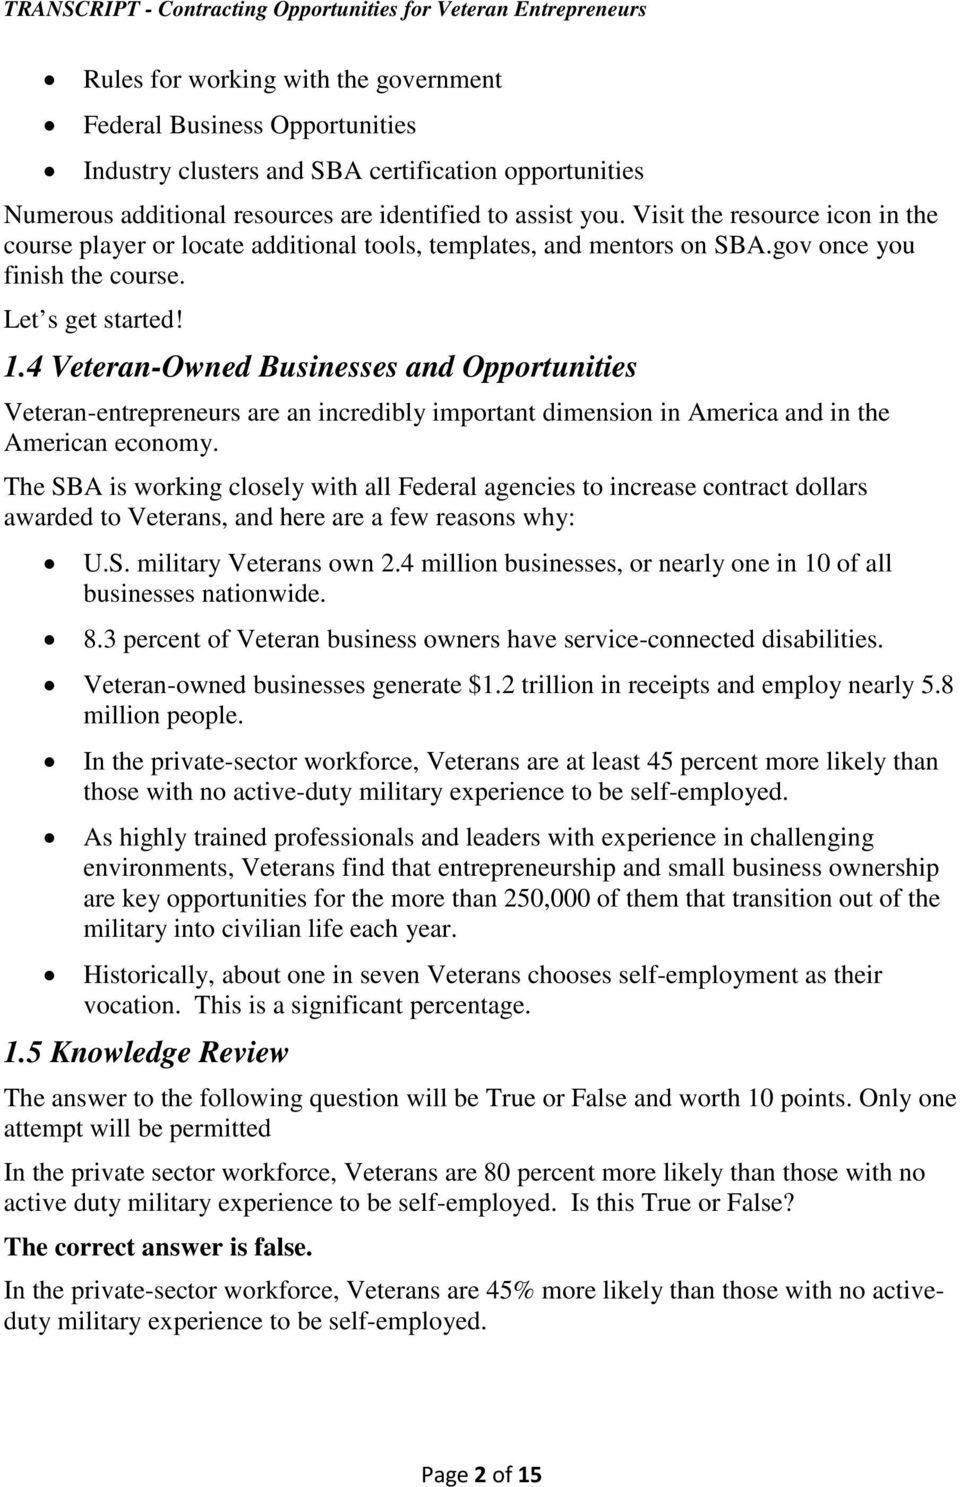 4 Veteran-Owned Businesses and Opportunities Veteran-entrepreneurs are an incredibly important dimension in America and in the American economy.